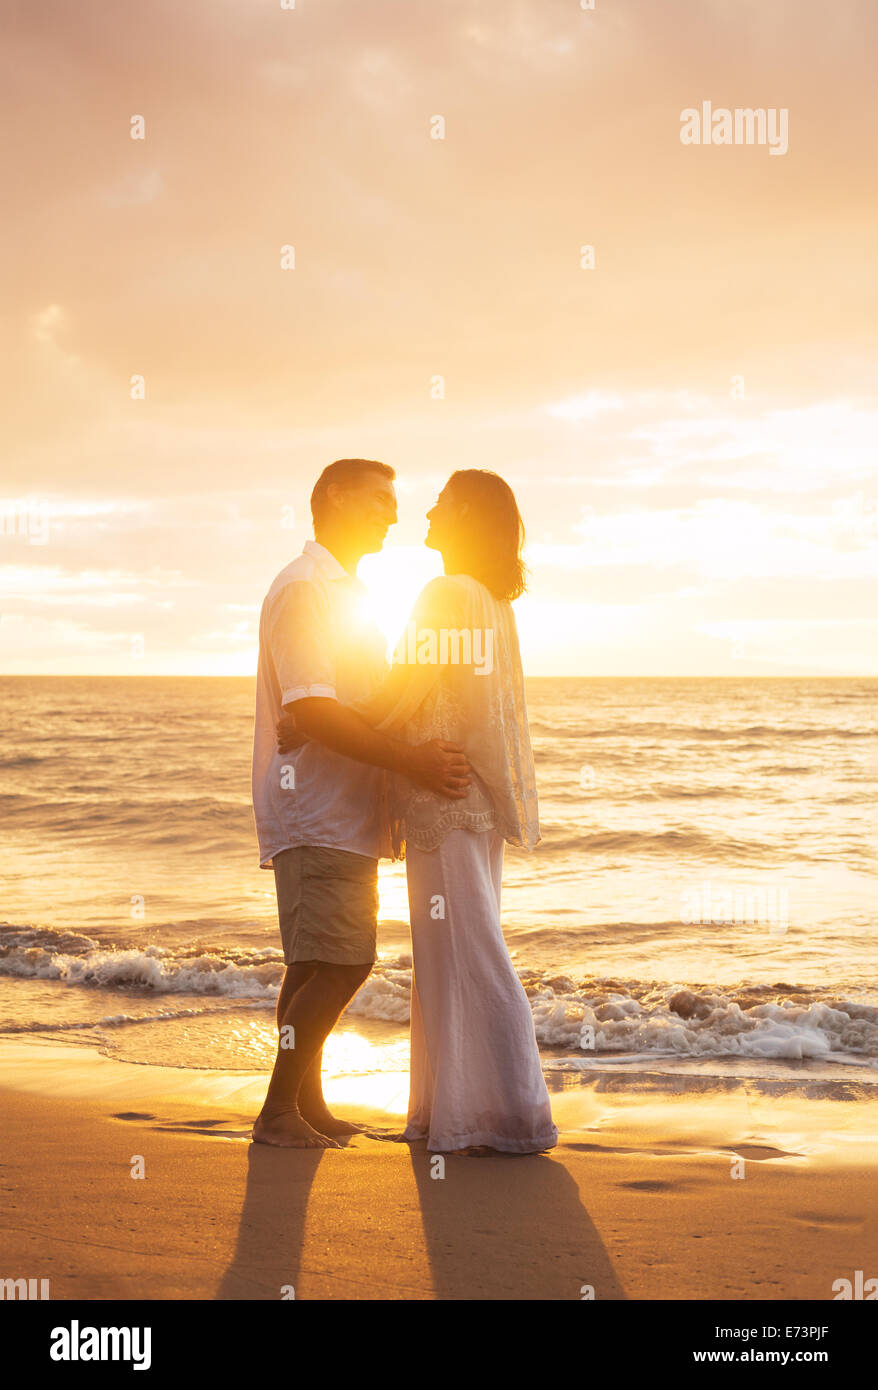 Romantic Mature Couple Kissing at Sunset on the Beach - Stock Image